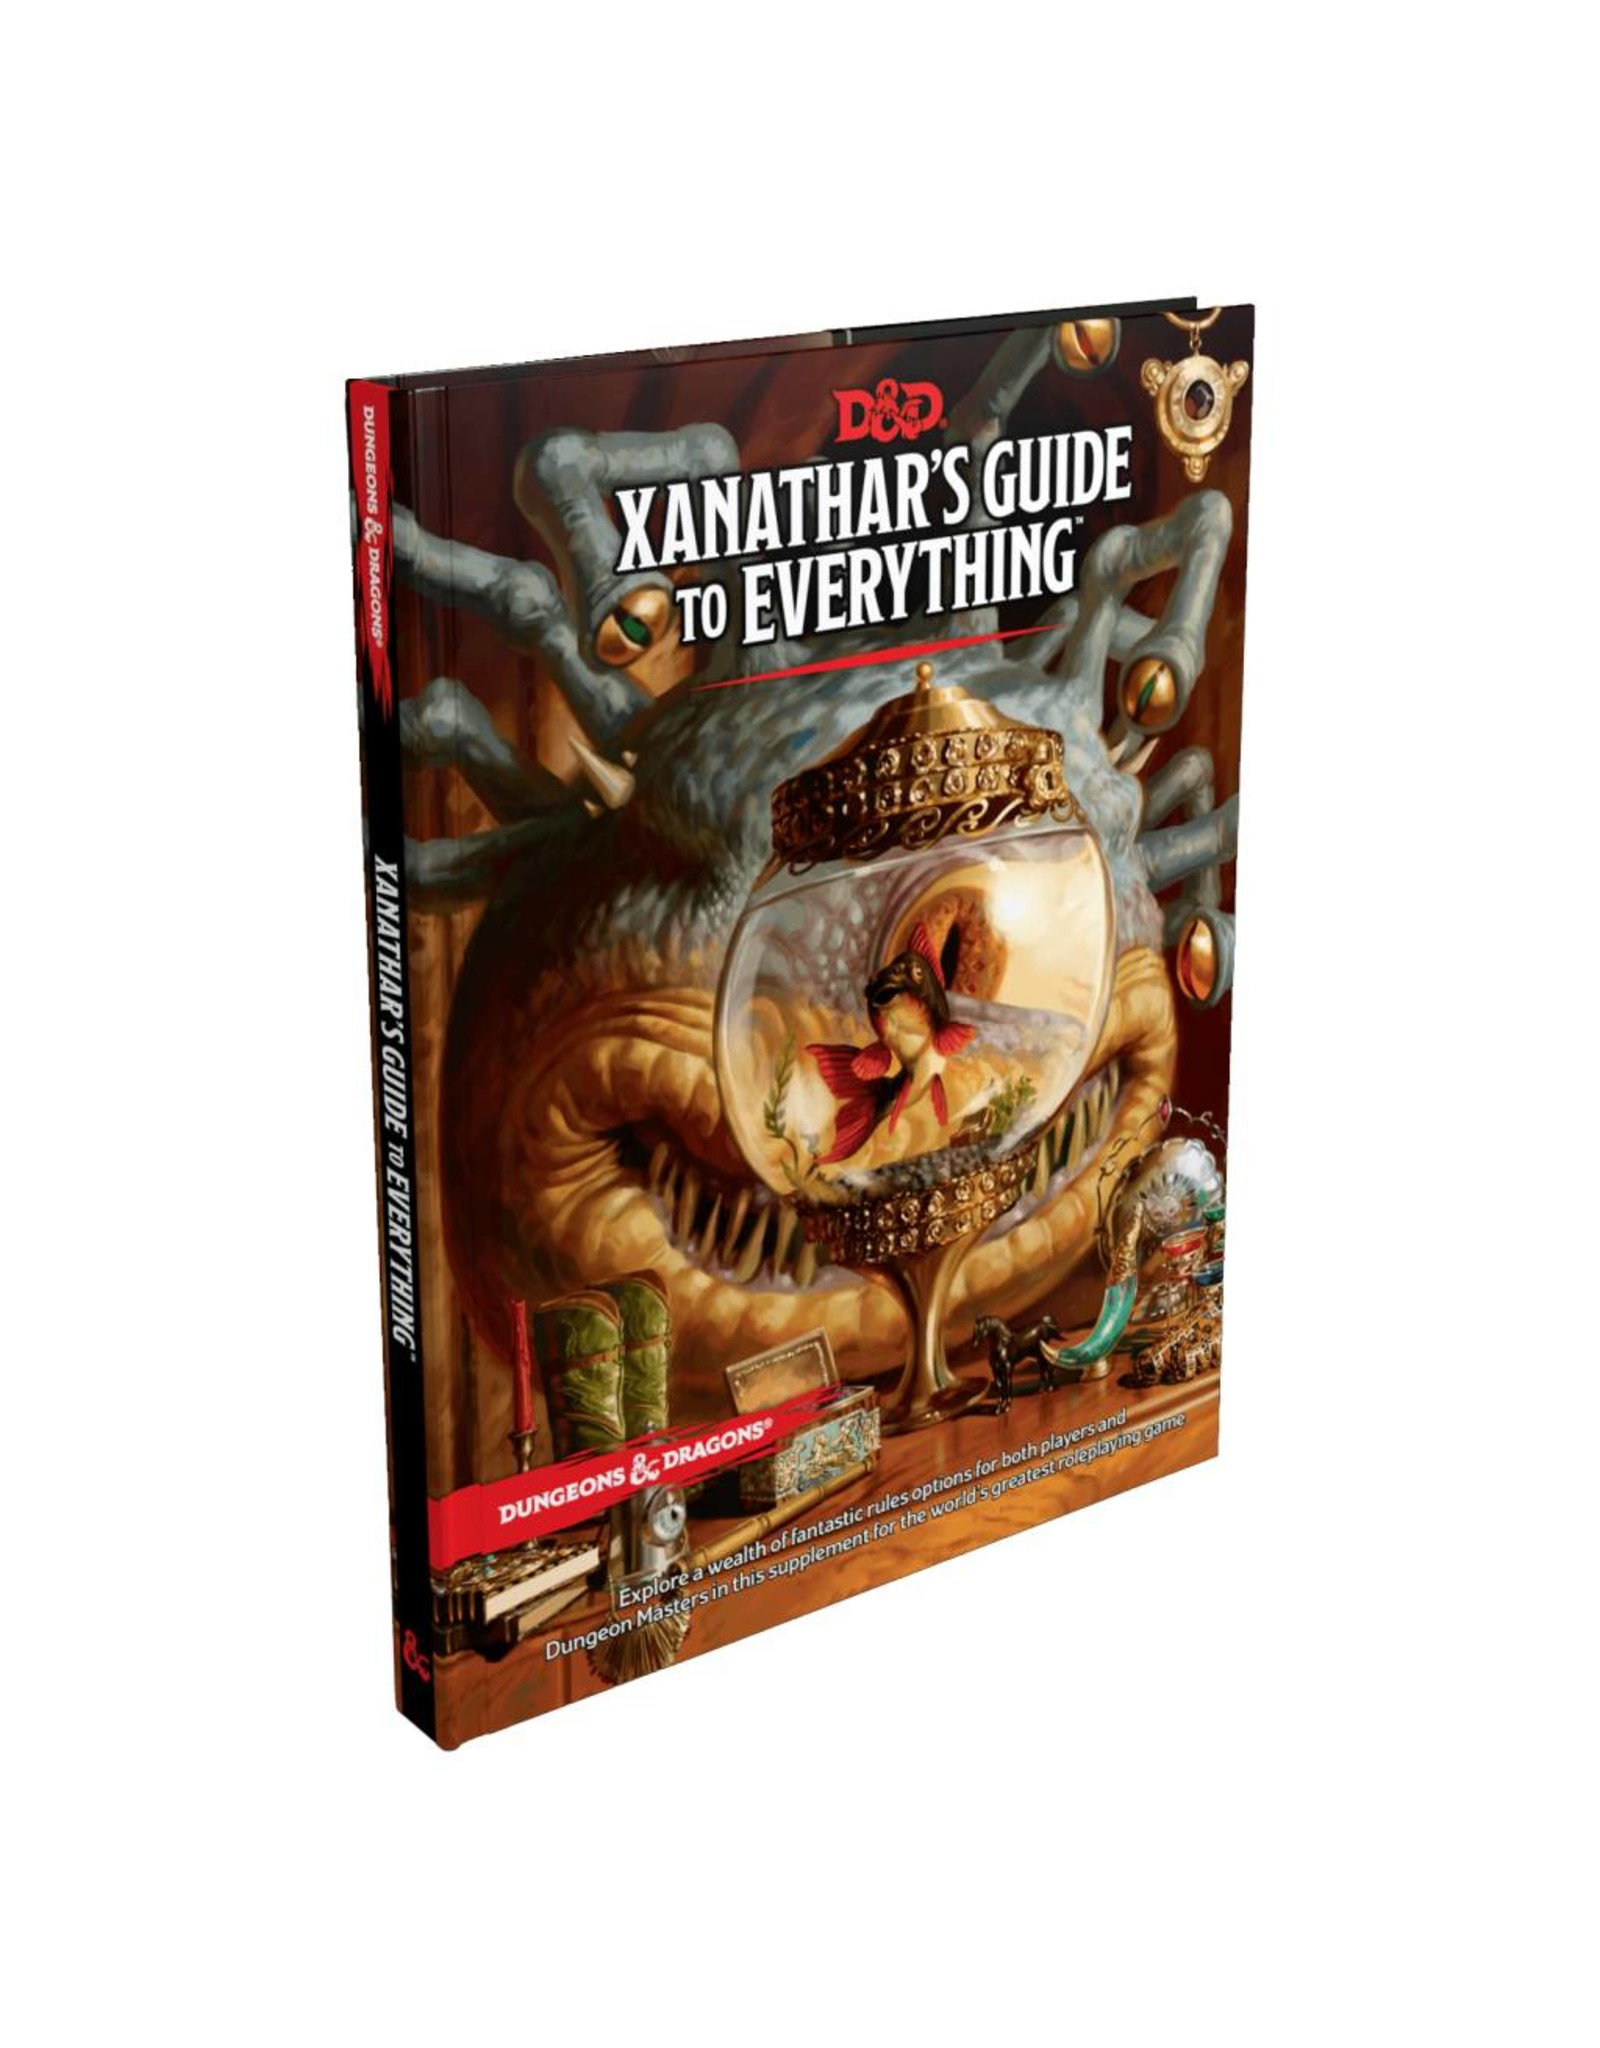 WIZARDS OF THE COAST DUNGEONS & DRAGONS 5E XANATHAR'S GUIDE TO EVERYTHING